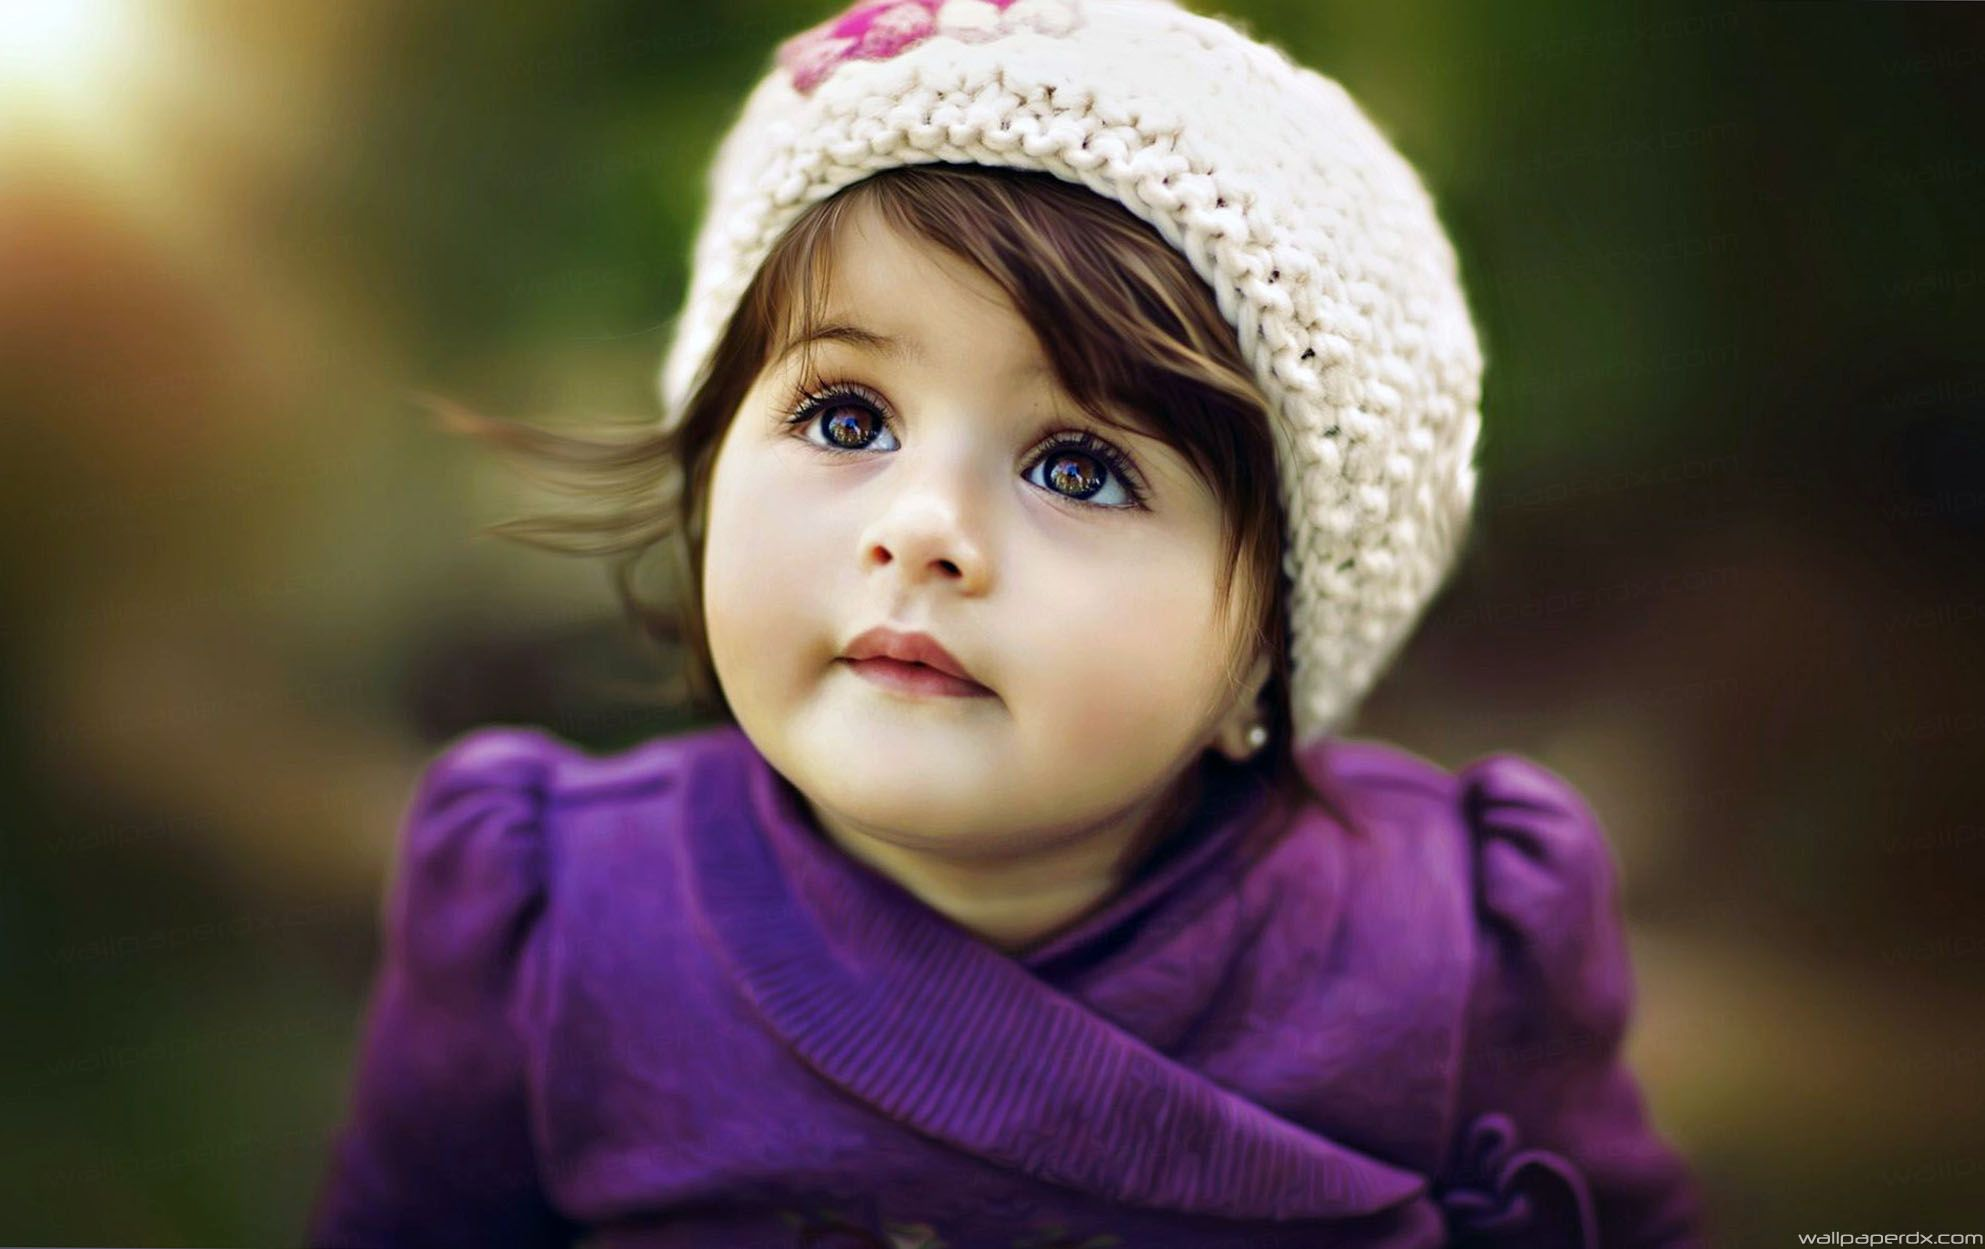 lovely baby face pretty cute full hd wallpaper Sekil.az